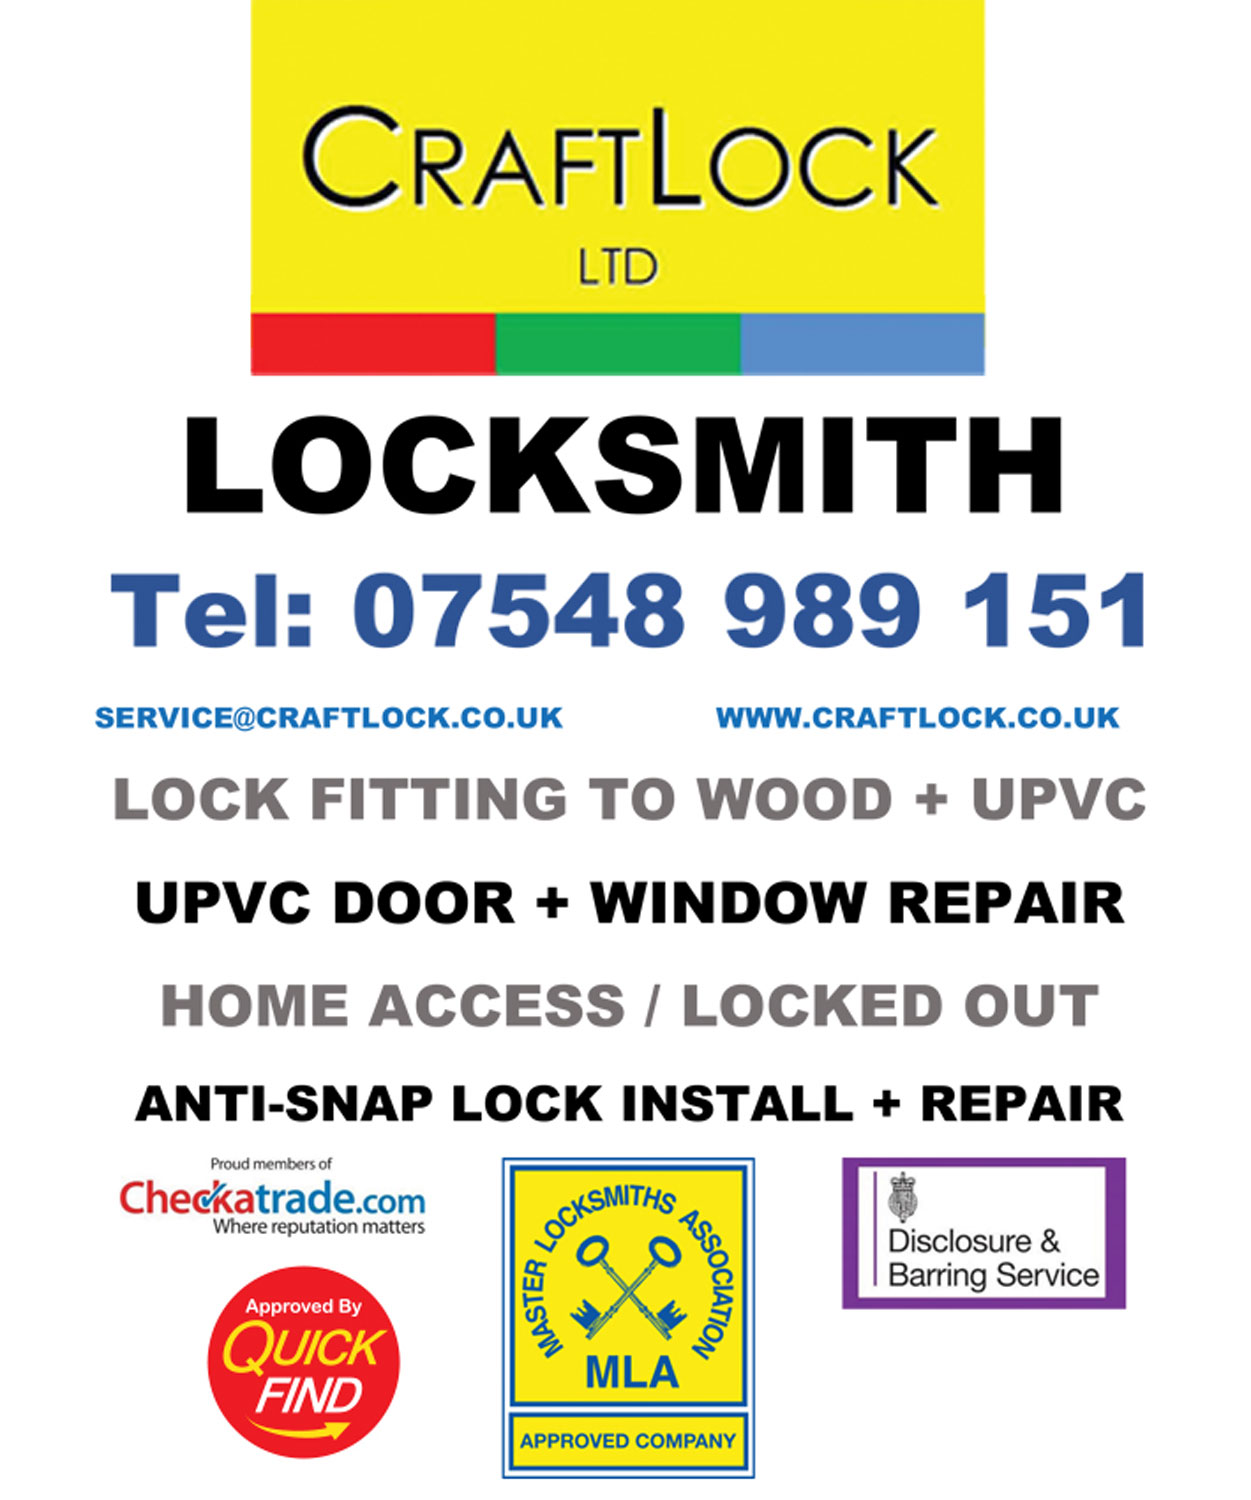 Craft Lock Ltd